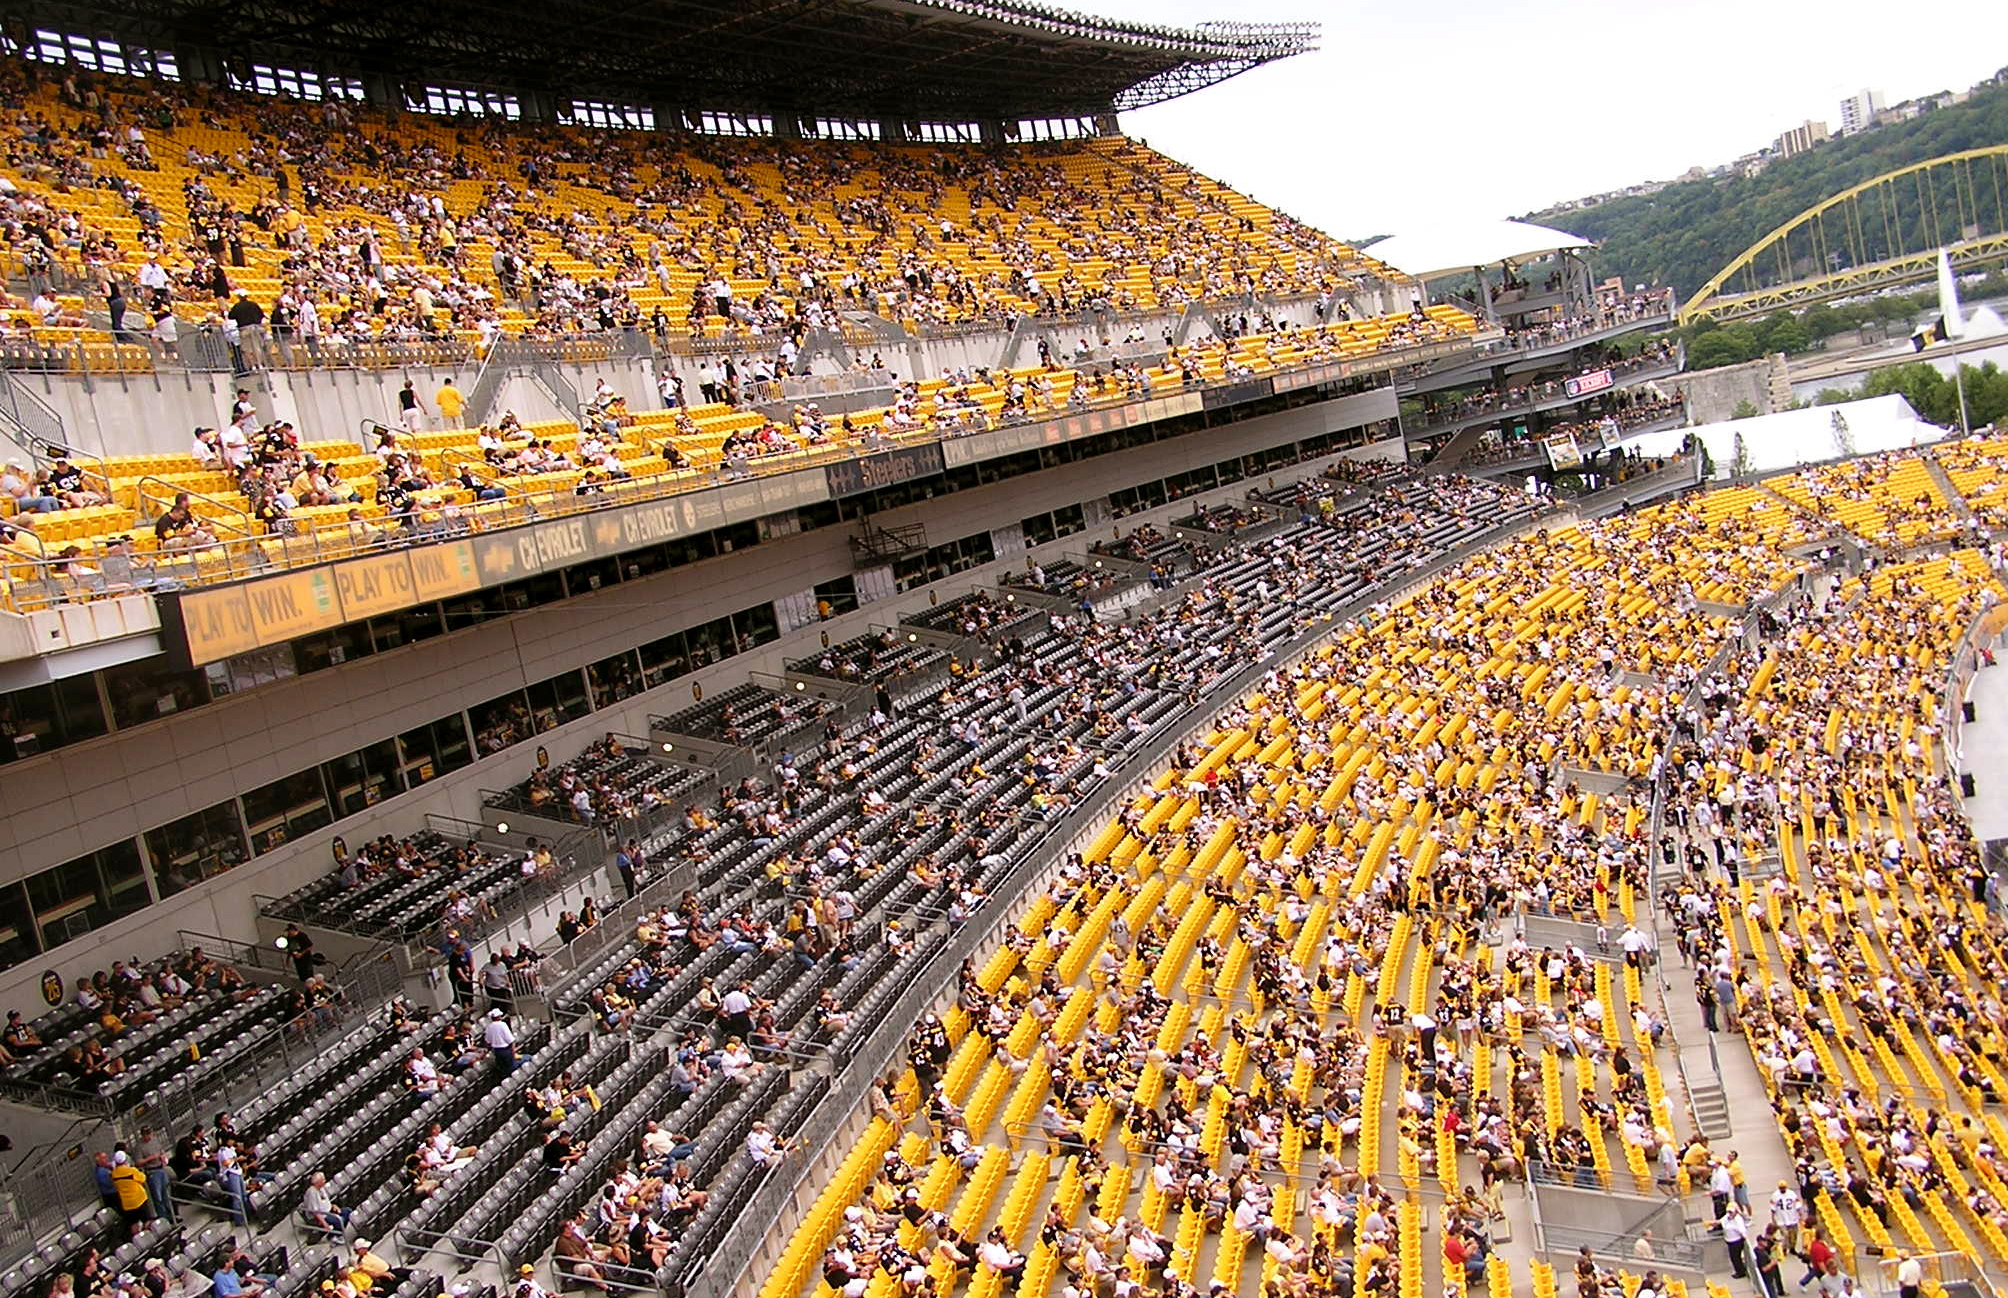 Pictures of heinz field pittsburgh pa Did Seal Team 6 members strangle Green Beret to cover